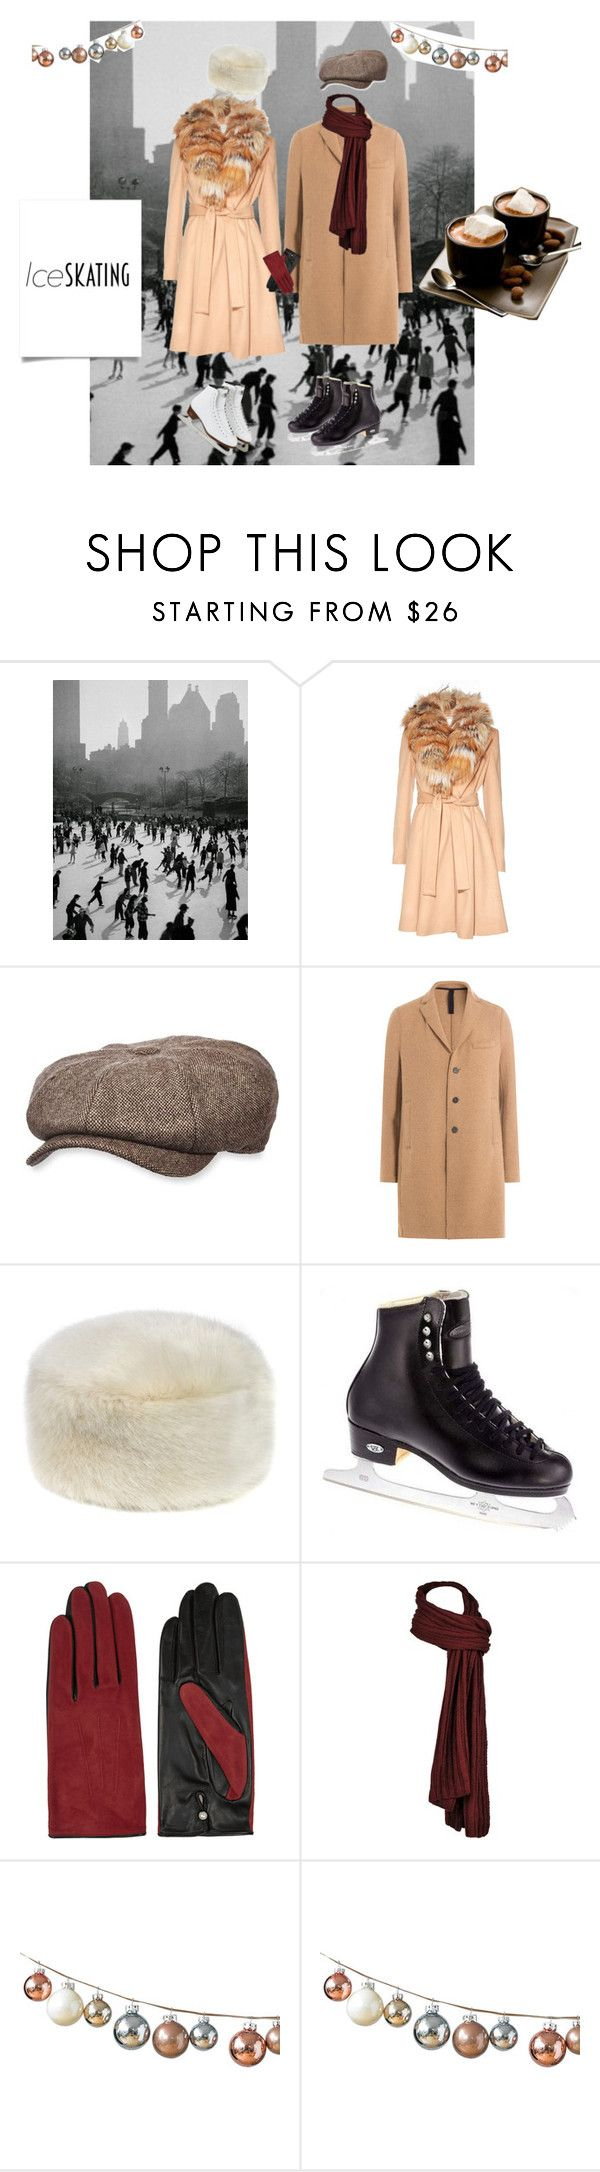 """""""Ice skating with the one."""" by martine-a-nolan ❤ liked on Polyvore featuring Alice + Olivia, Stetson, Harris Wharf London, Riedell and AGNELLE"""